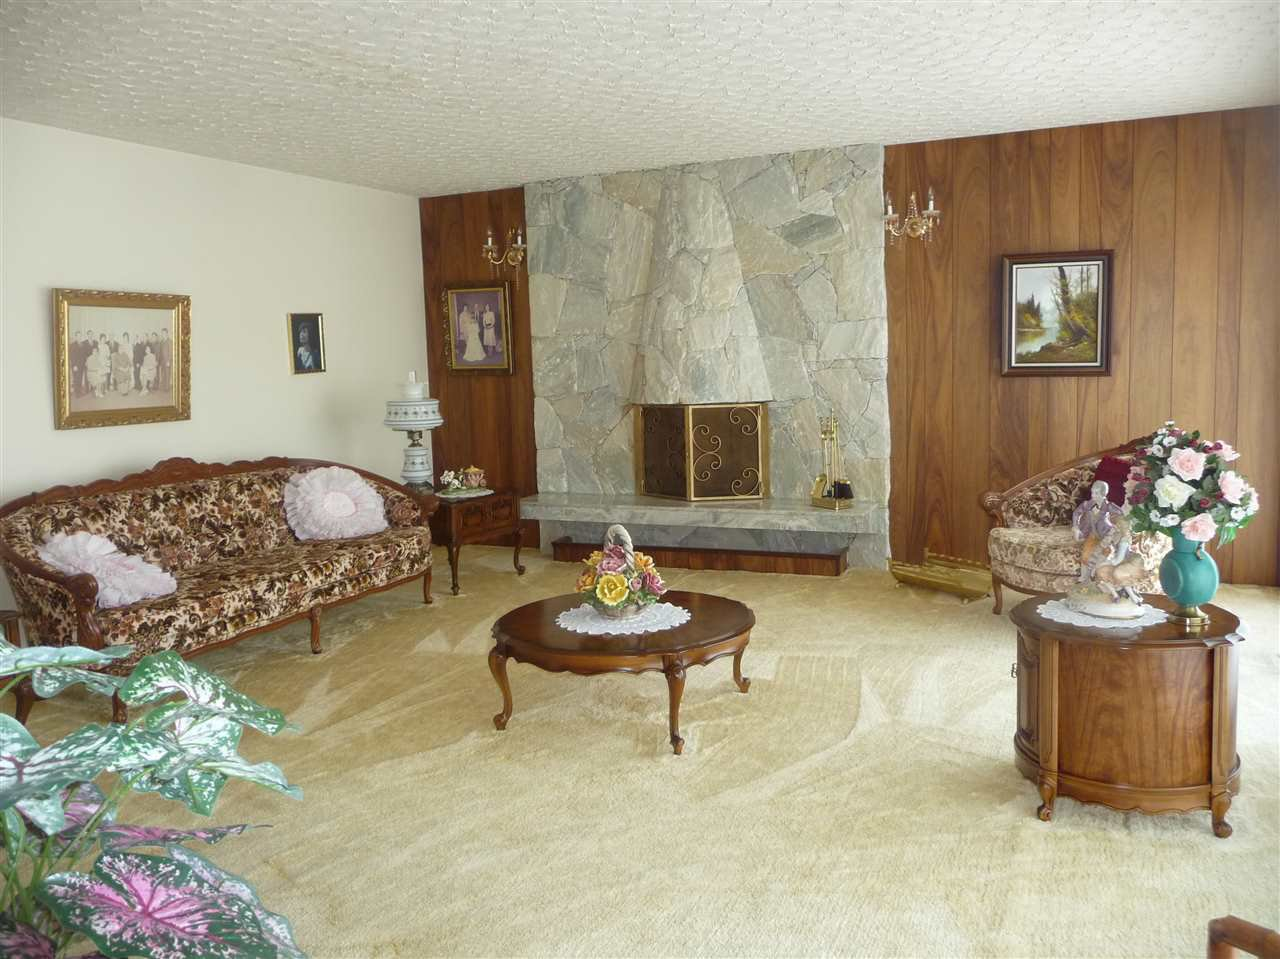 Photo 3: Photos: 7124 COLLISTER Drive in Burnaby: Government Road House for sale (Burnaby North)  : MLS®# R2048311